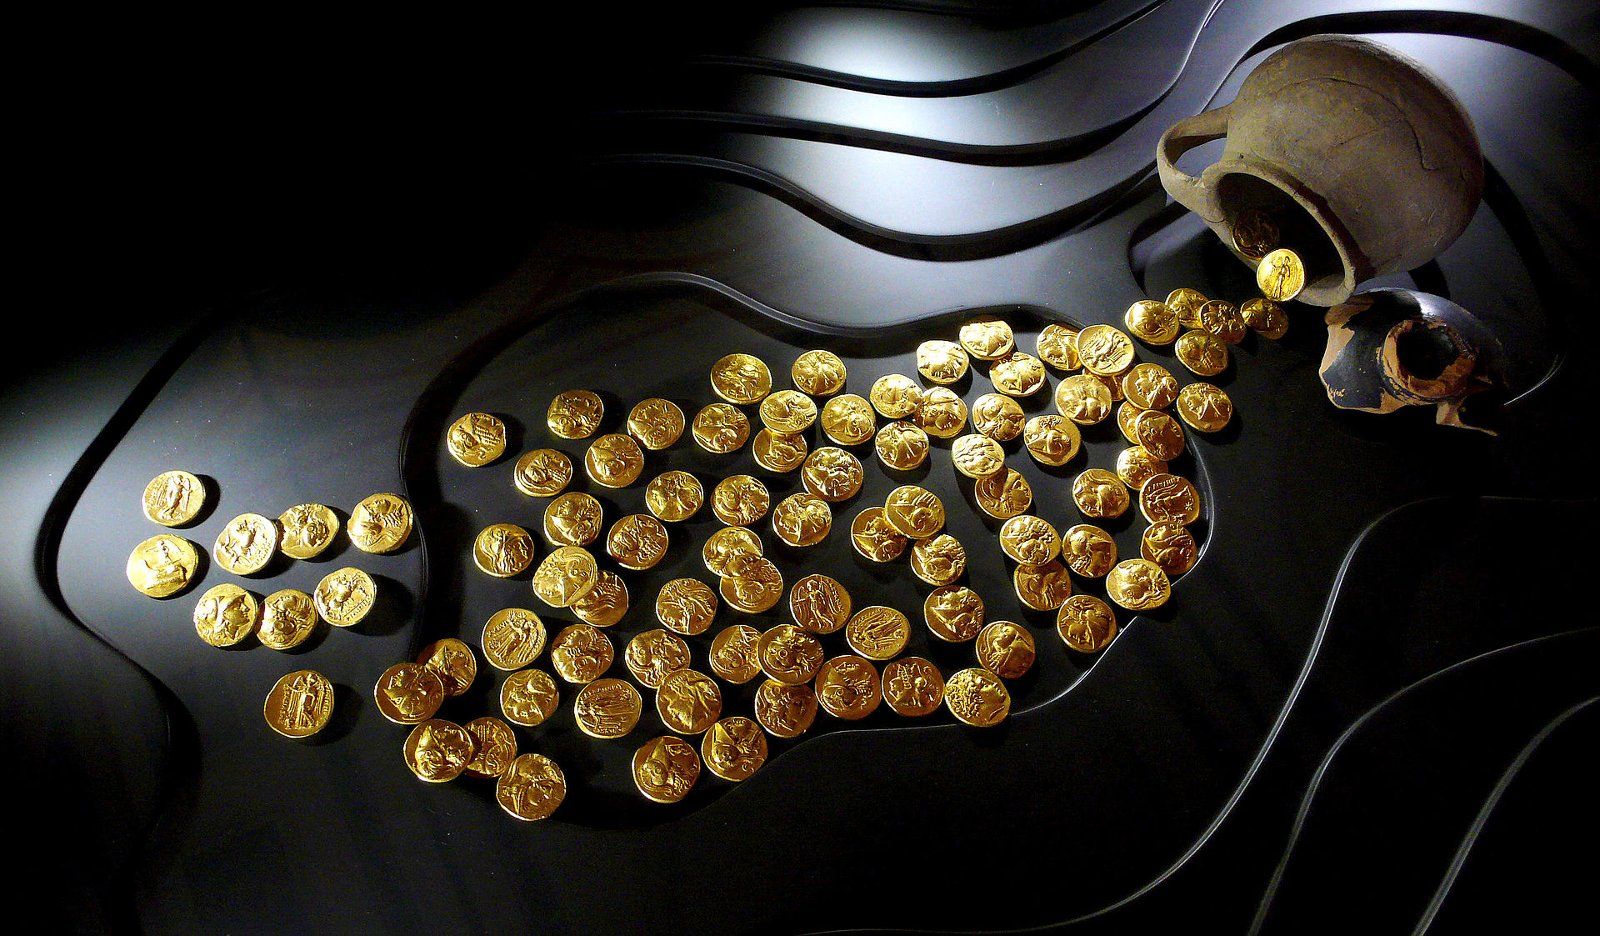 Hoard of gold coins from Epidaurus, 3rd Century BC, at Numismatic Museum of Athens. Source: Xuan Che